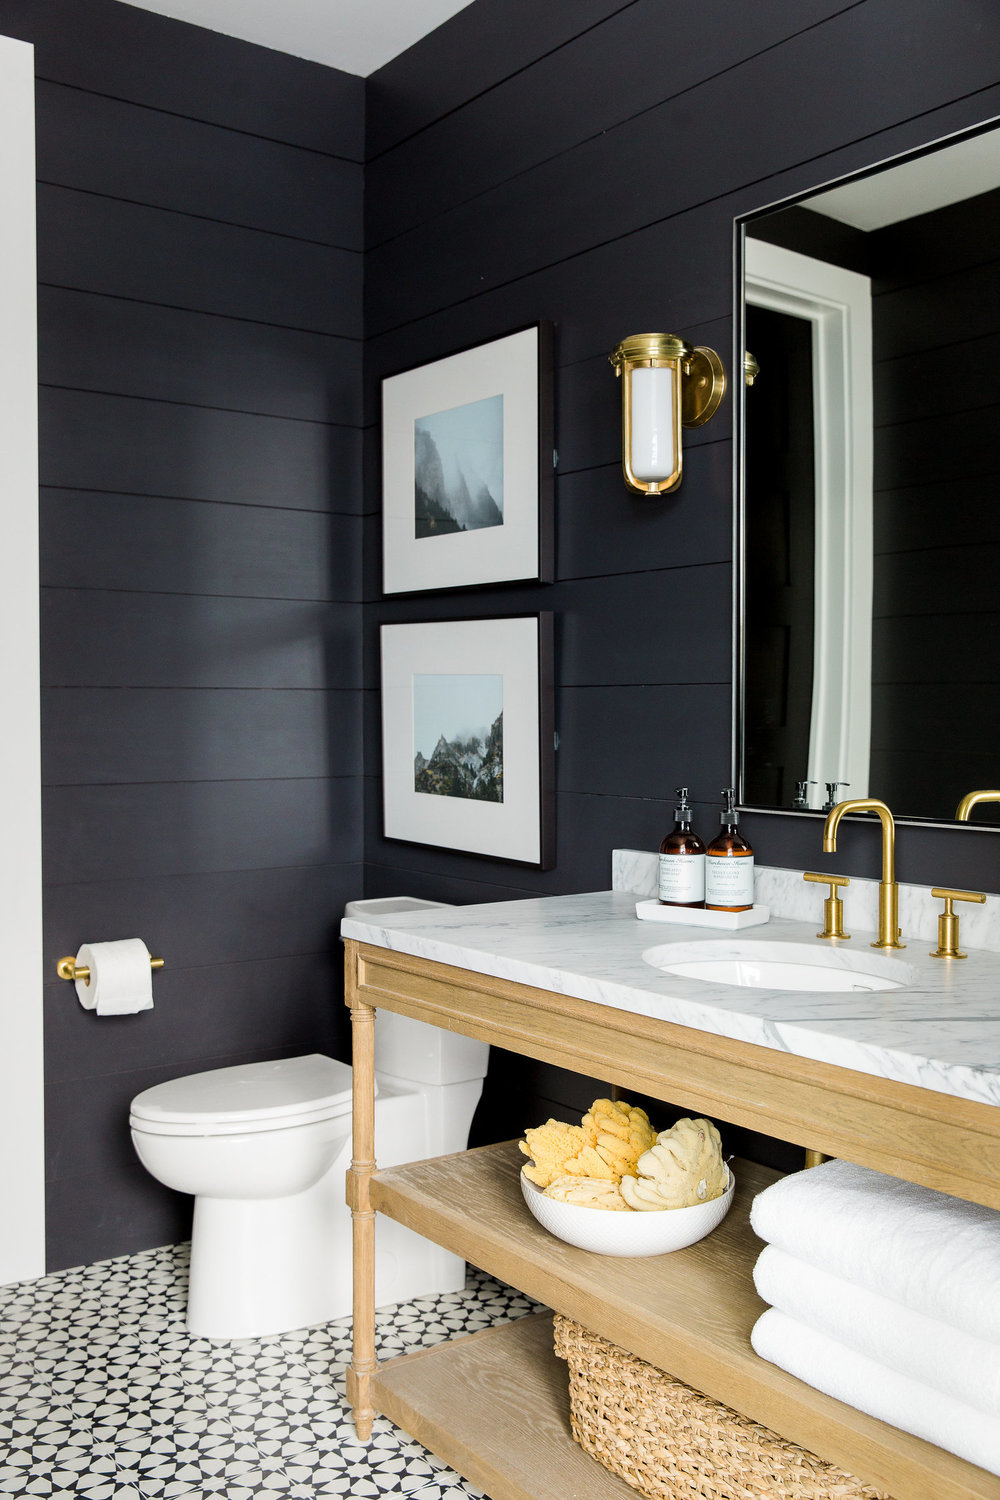 Toilet and vanity in dark shiplap bathroom